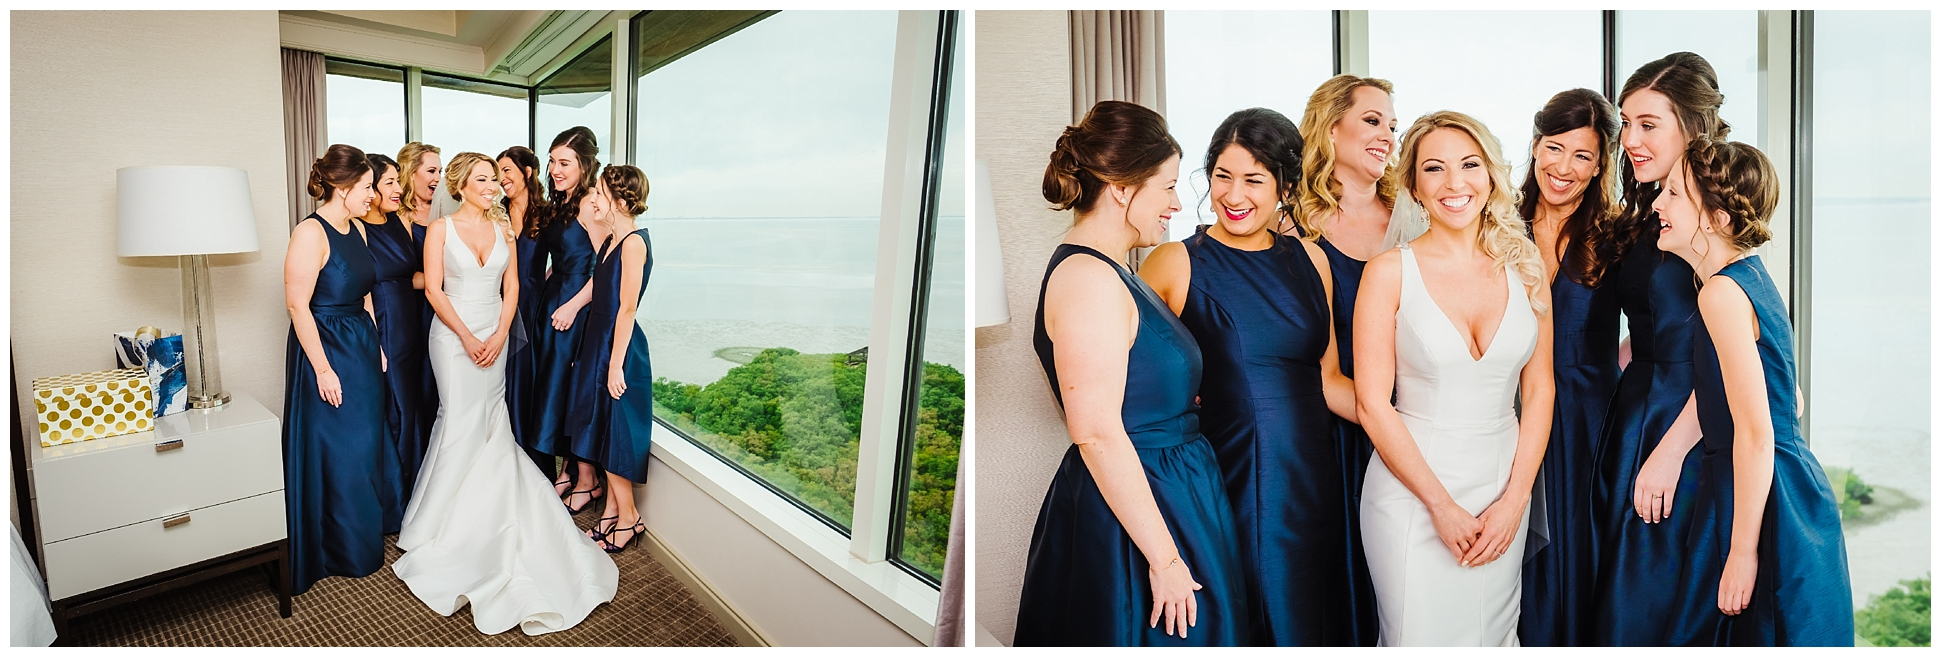 tampa-wedding-photographer-sacred-heart-armature-works-theater-riverfront_0012.jpg